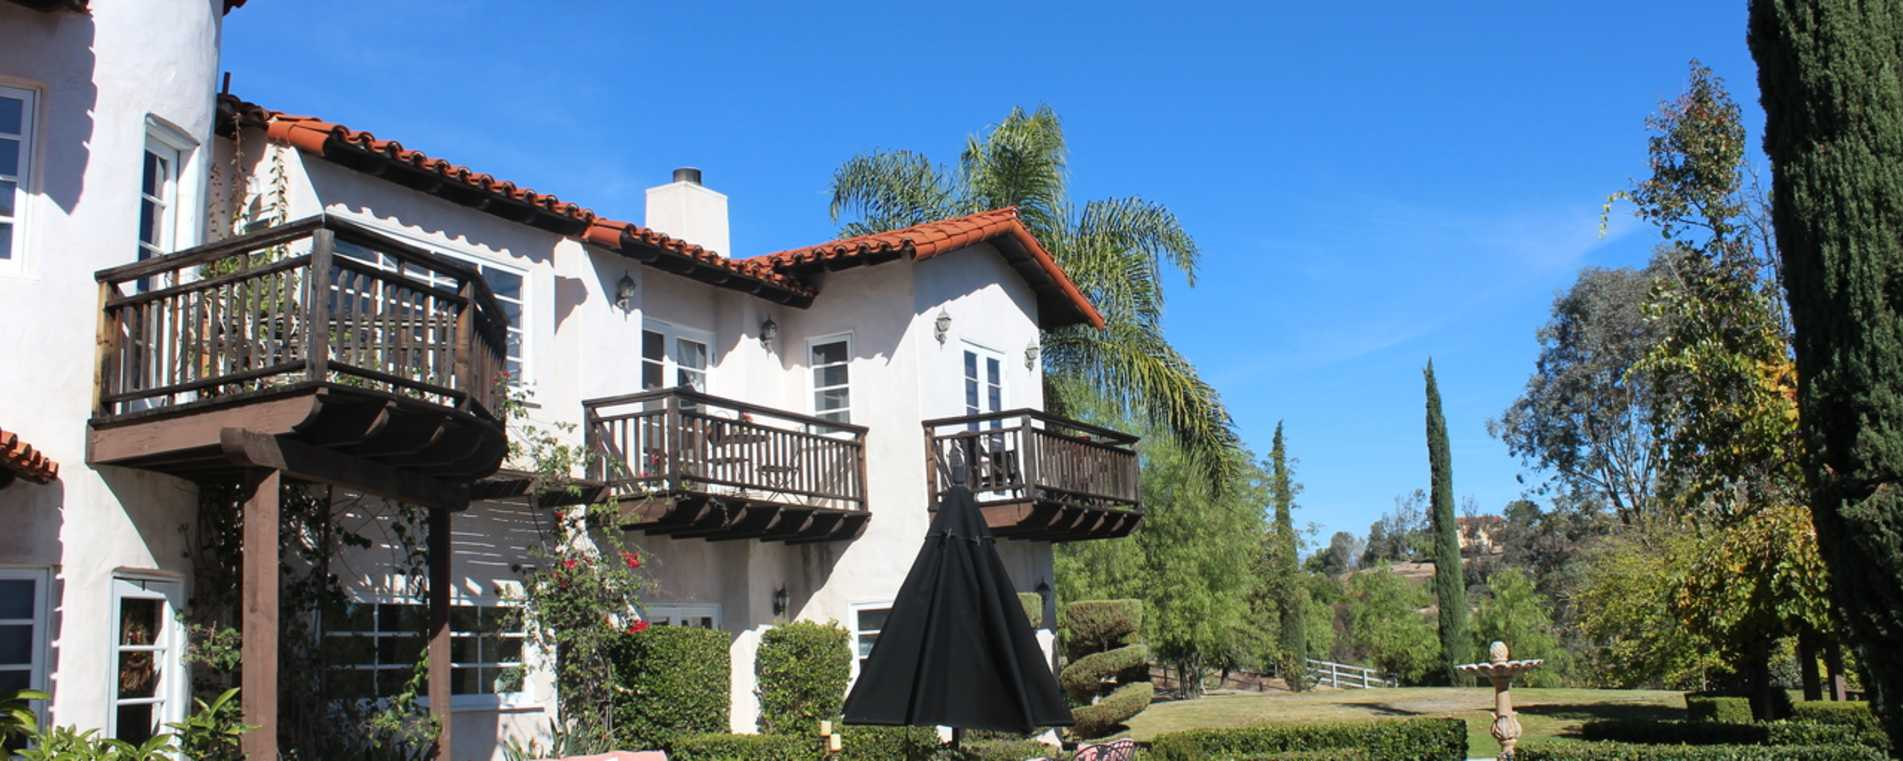 Spanish Colonial - Perfect Getaways Inc.